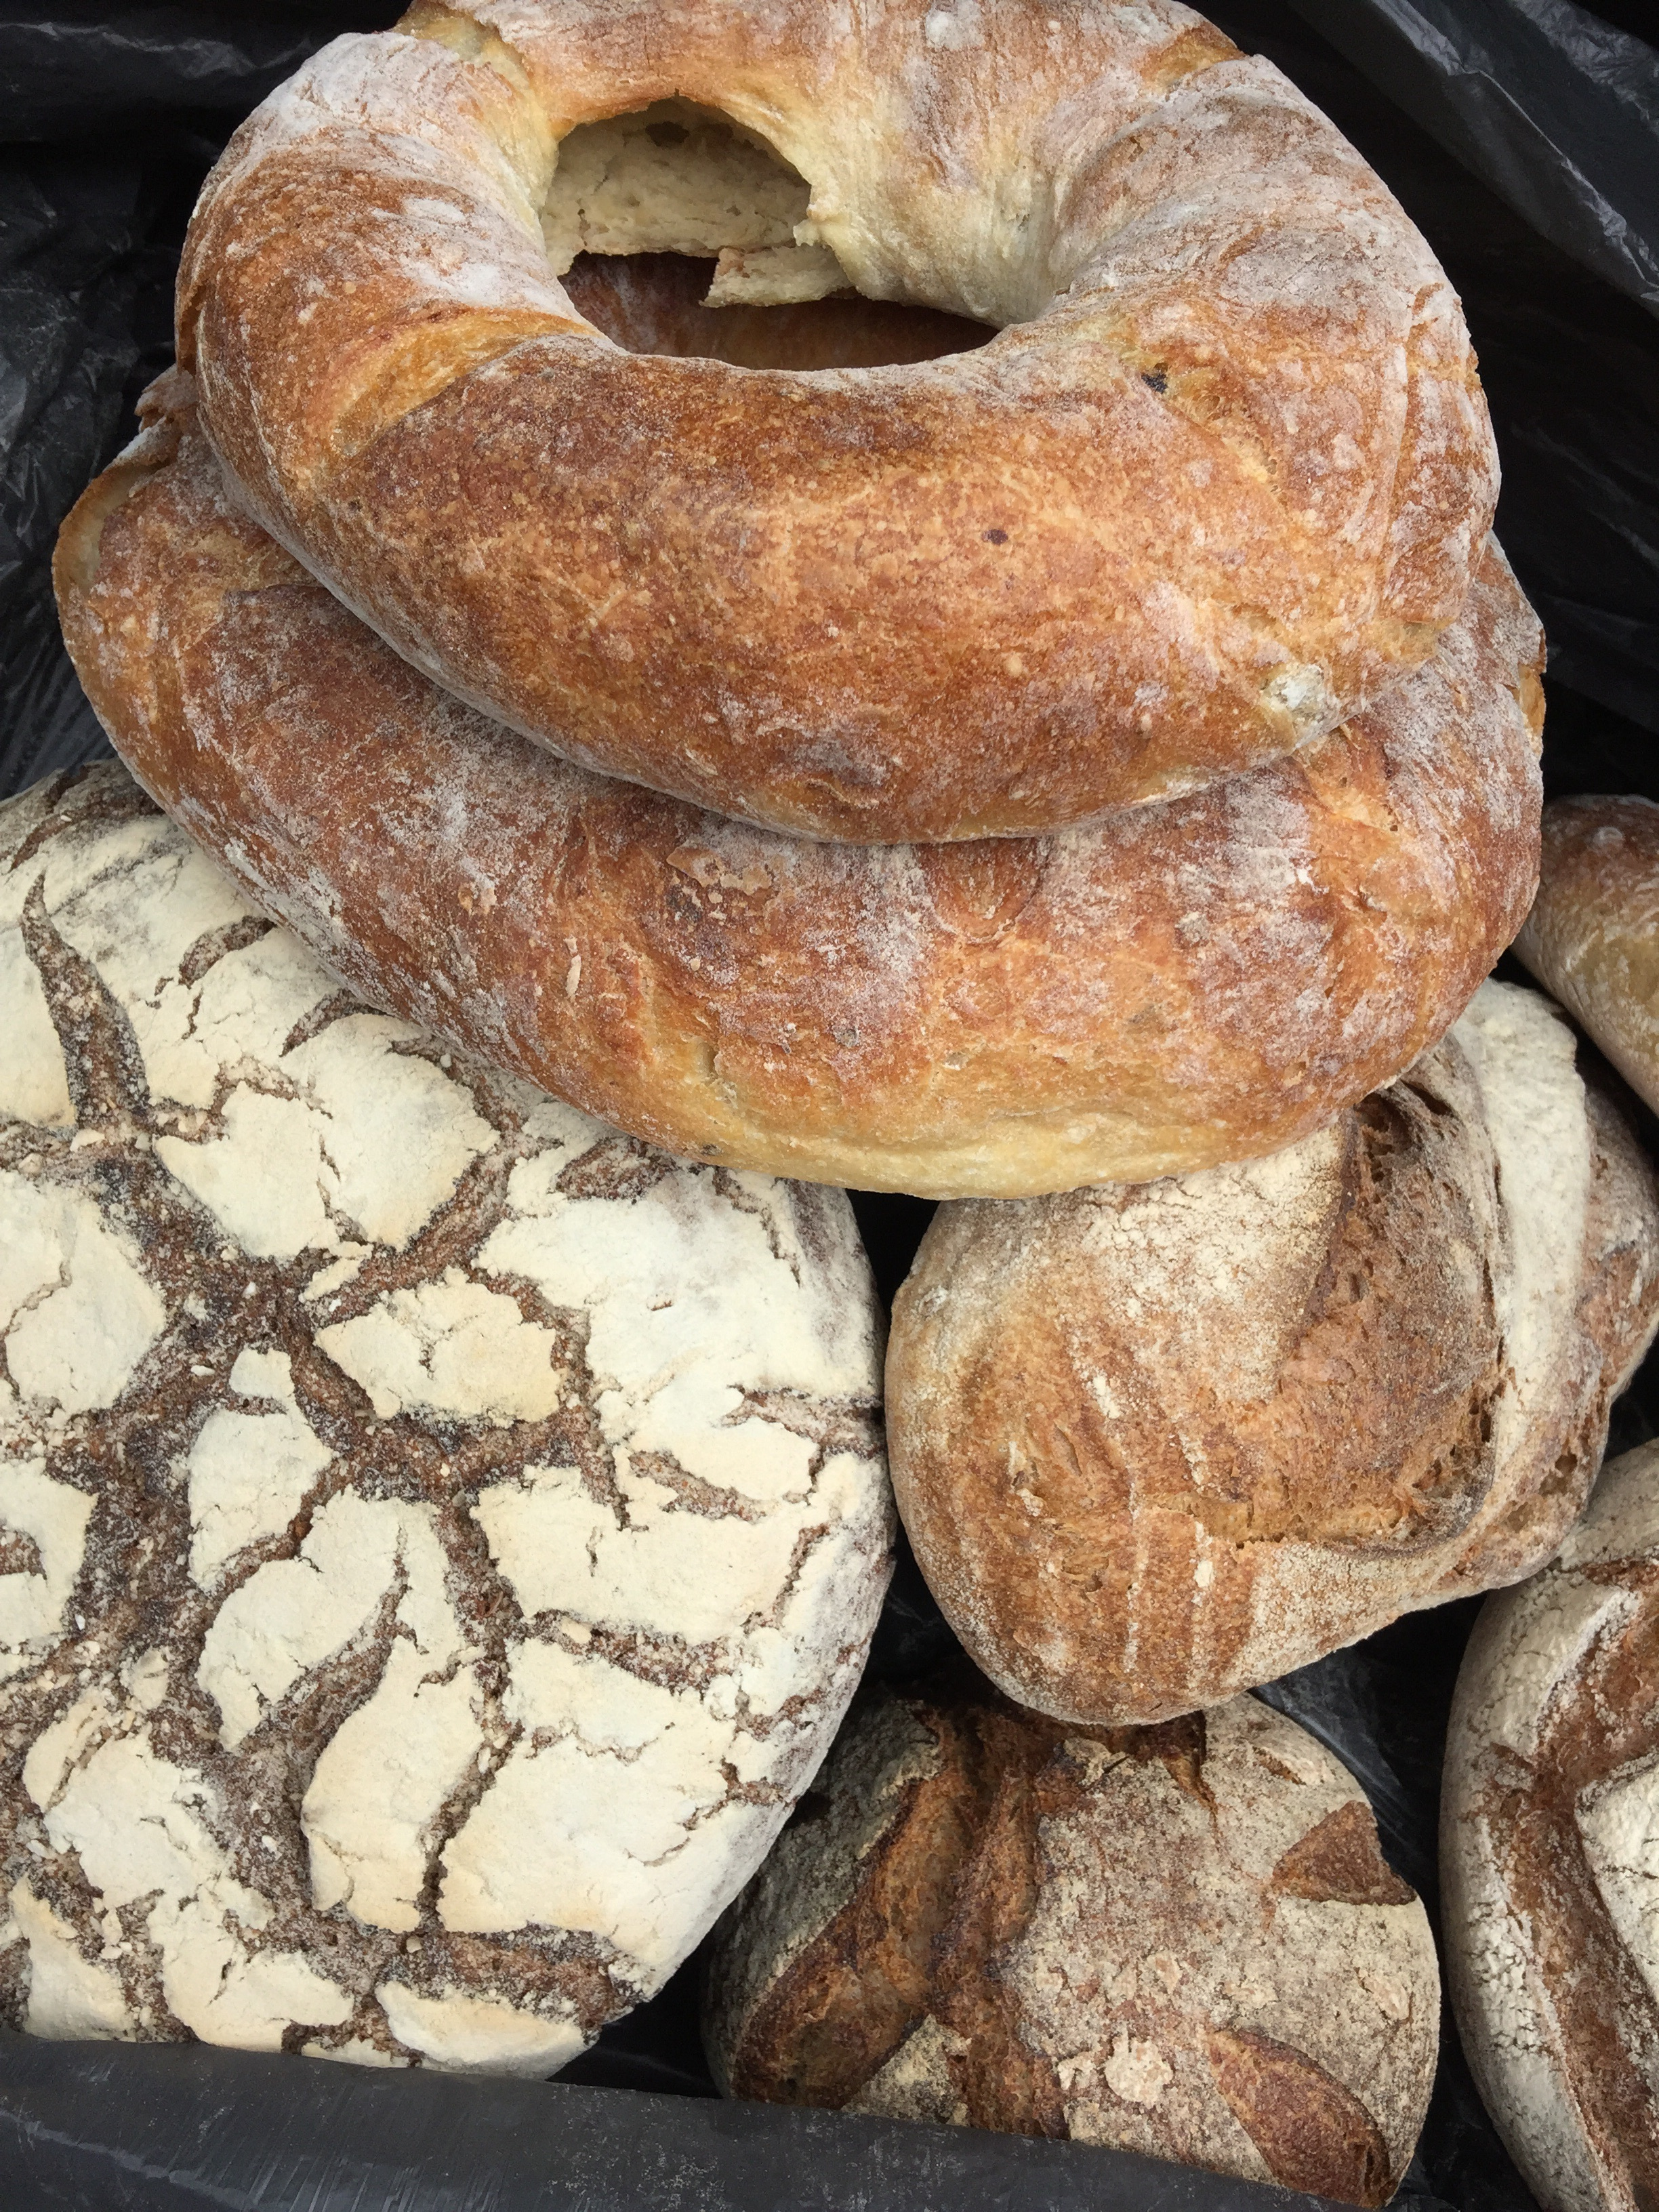 Artisan bread, fresh from Parliament Hill farmers market